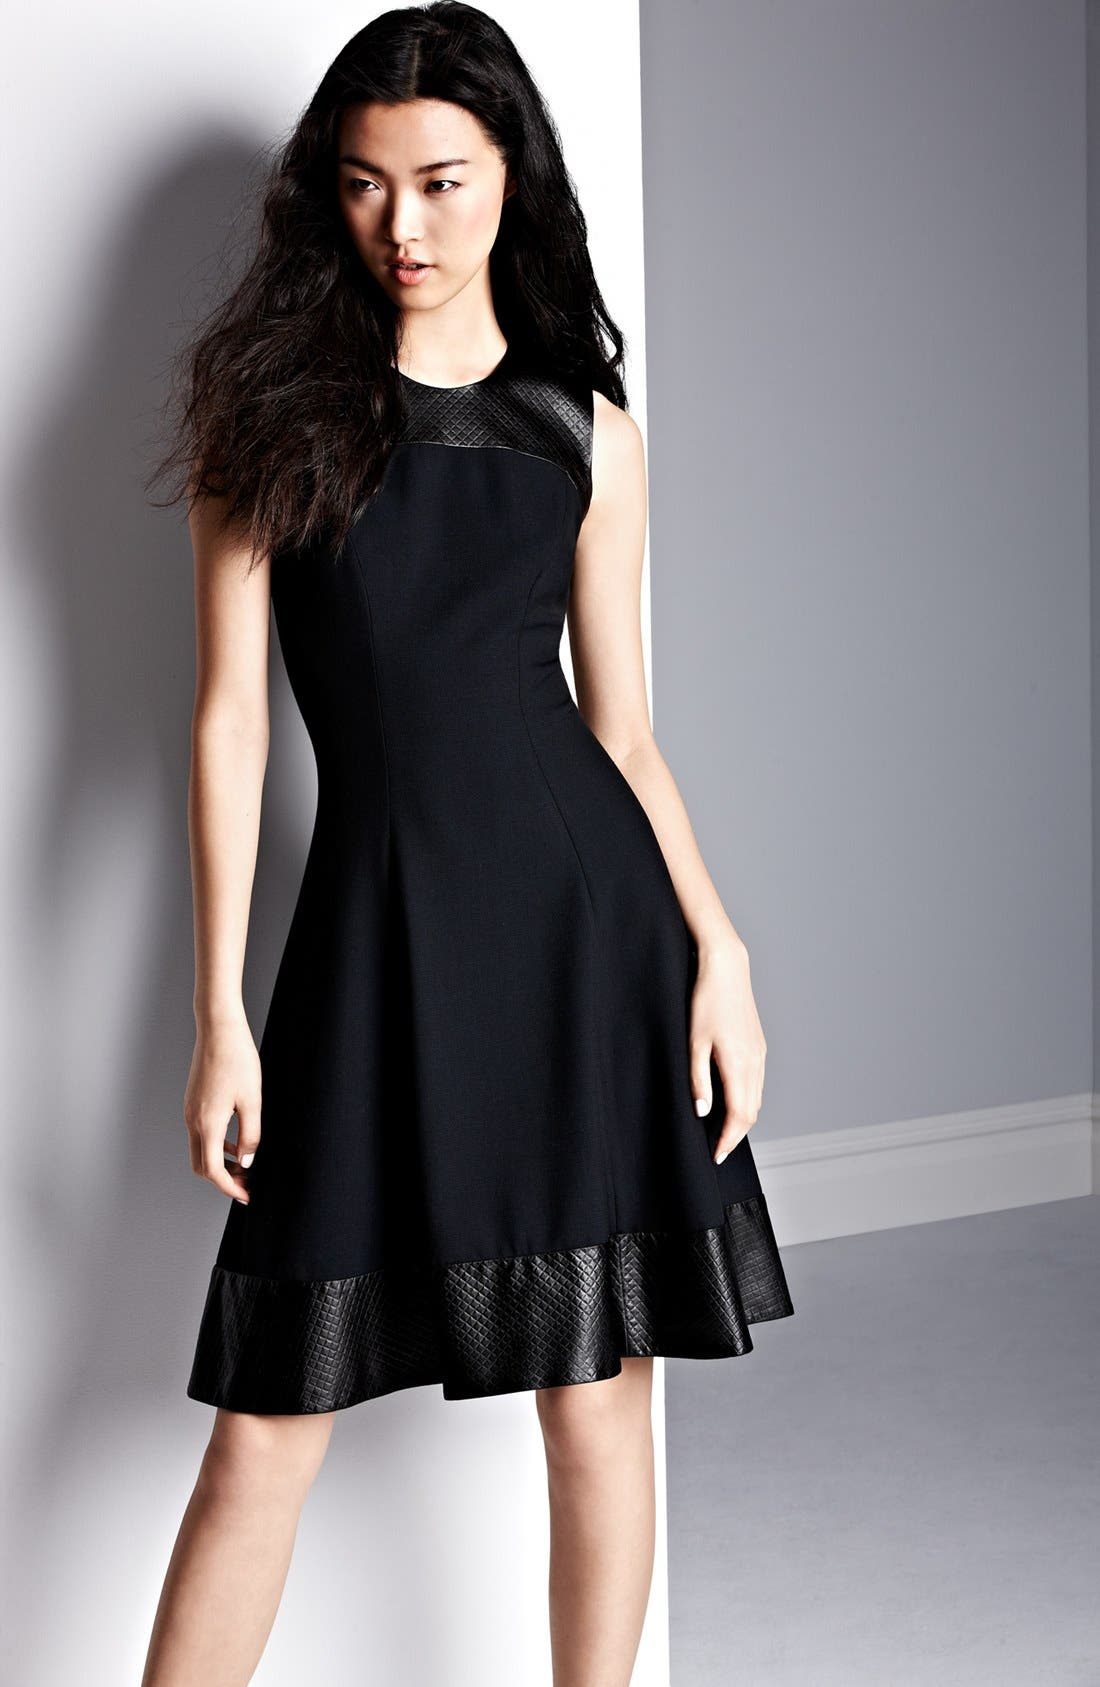 Alternate Image 1 Selected - L'AGENCE Dress & Accessories